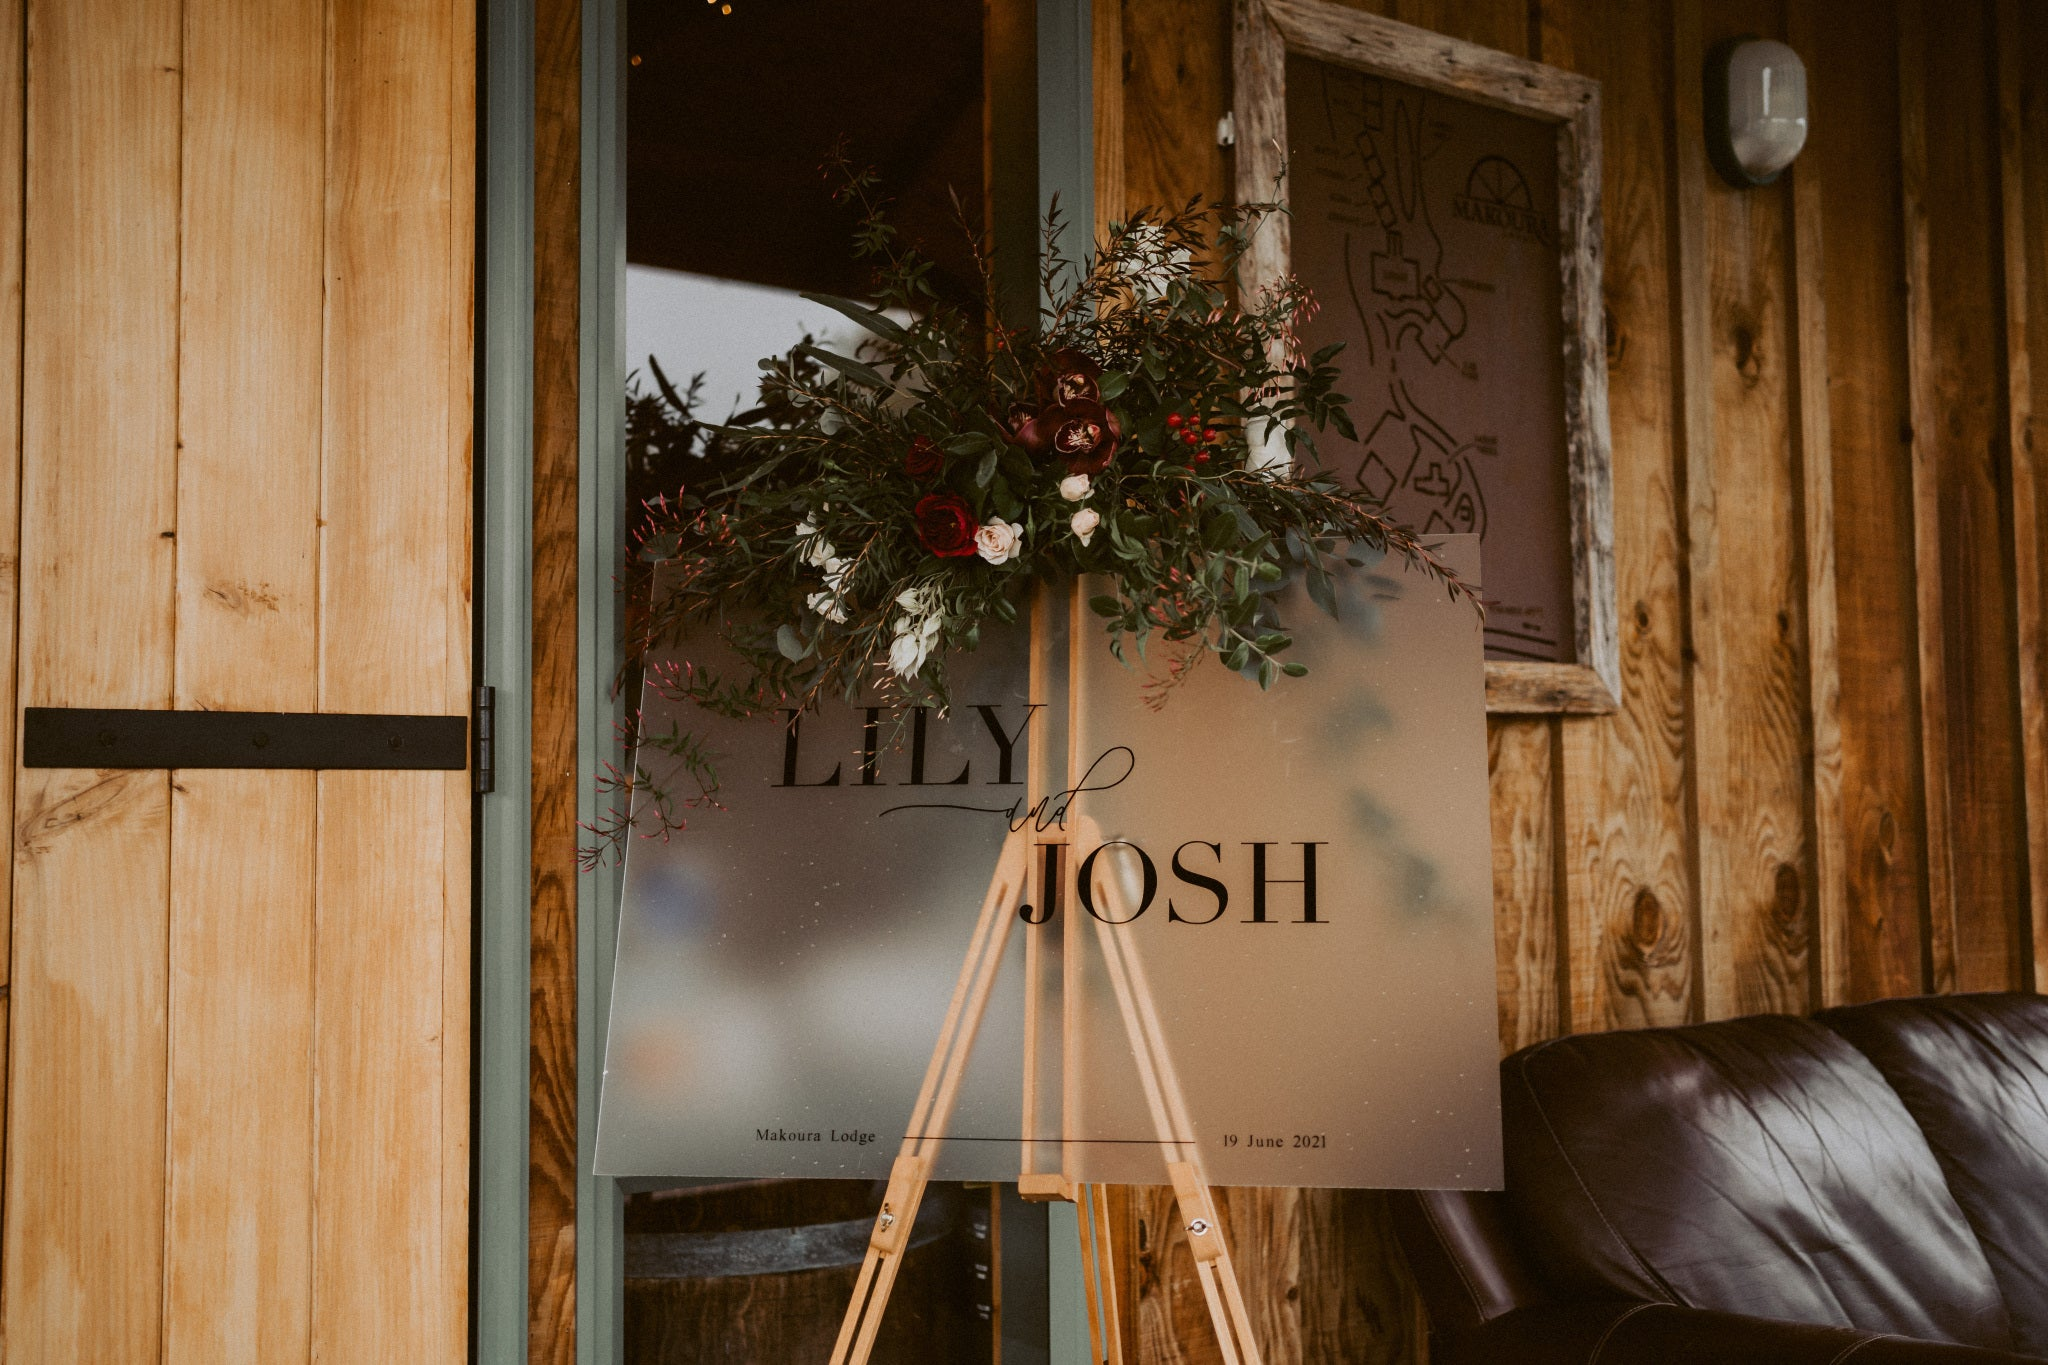 Lily + Josh | Wedding Frosted Acrylic Welcome Sign | The Paper Gazelle Wedding Feature